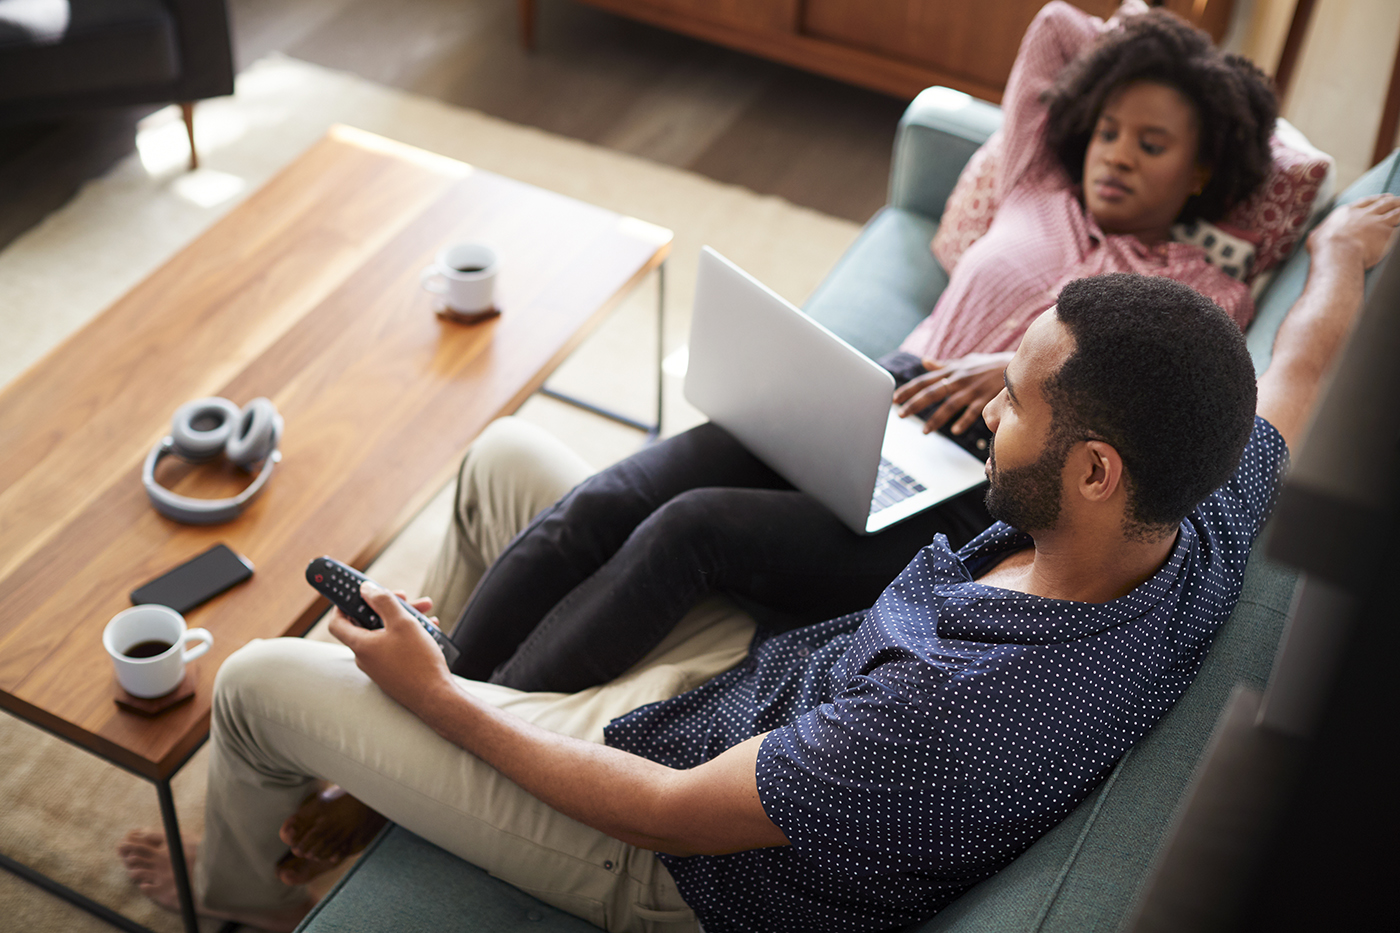 couple sitting on couch while using laptop and watching tv